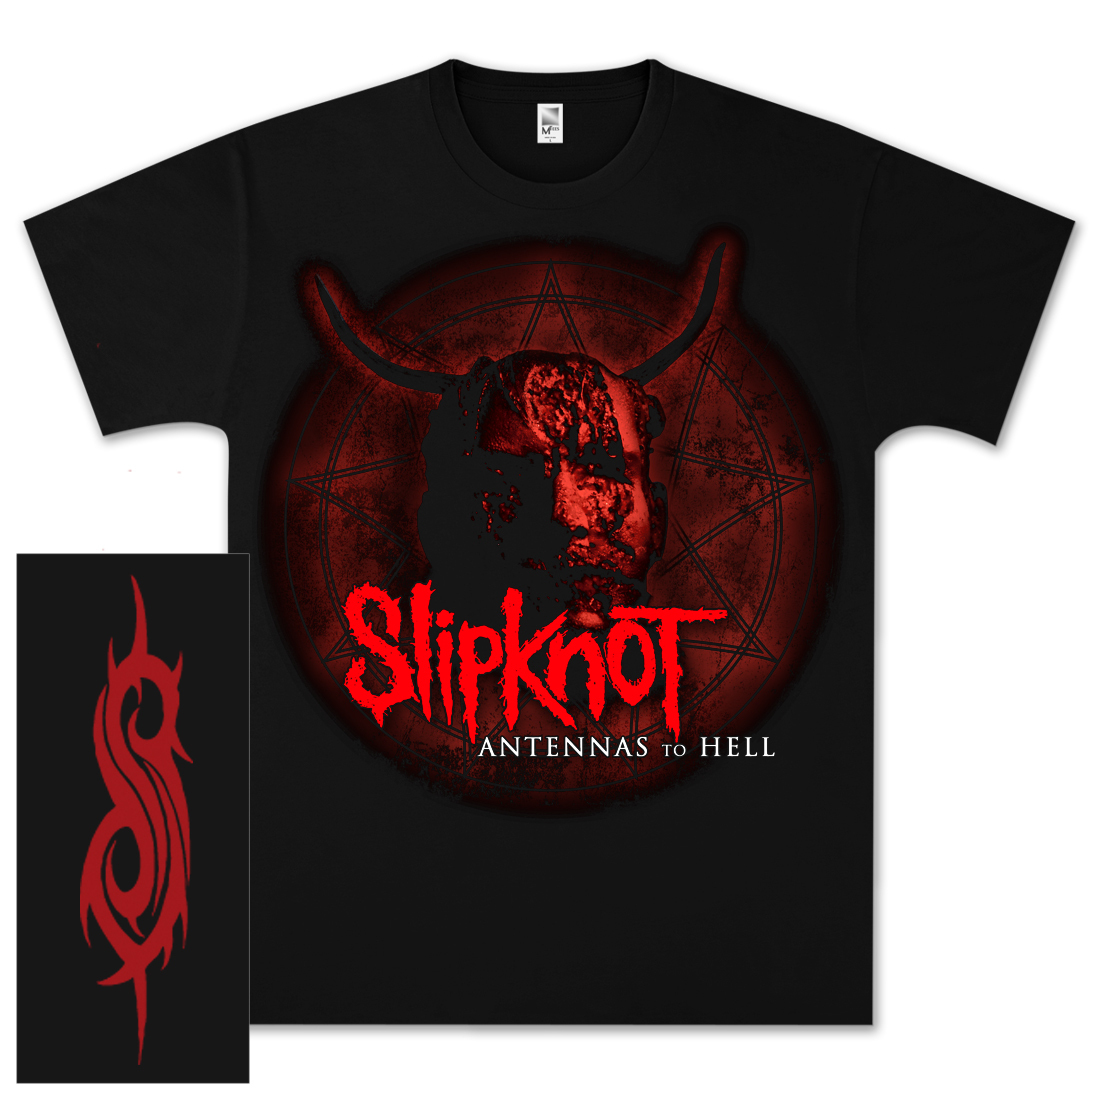 Slipknot Antennas to Hell T-Shirt